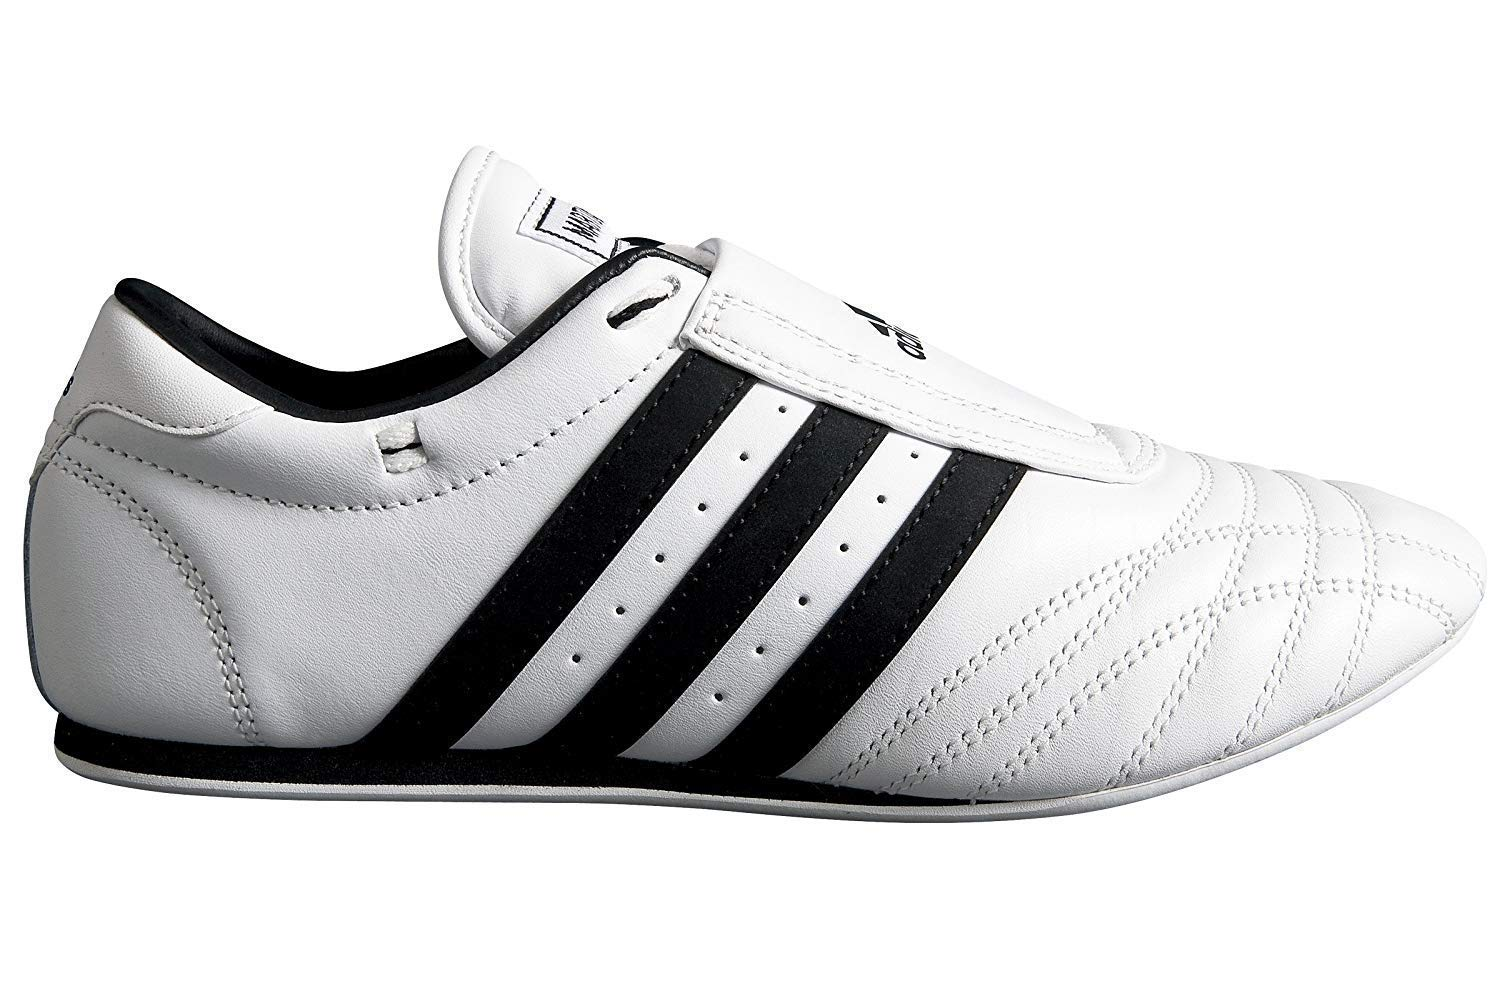 Adidas Karate/Martial Arts/Taekwondo Shoes-size 11.5 White by adidas